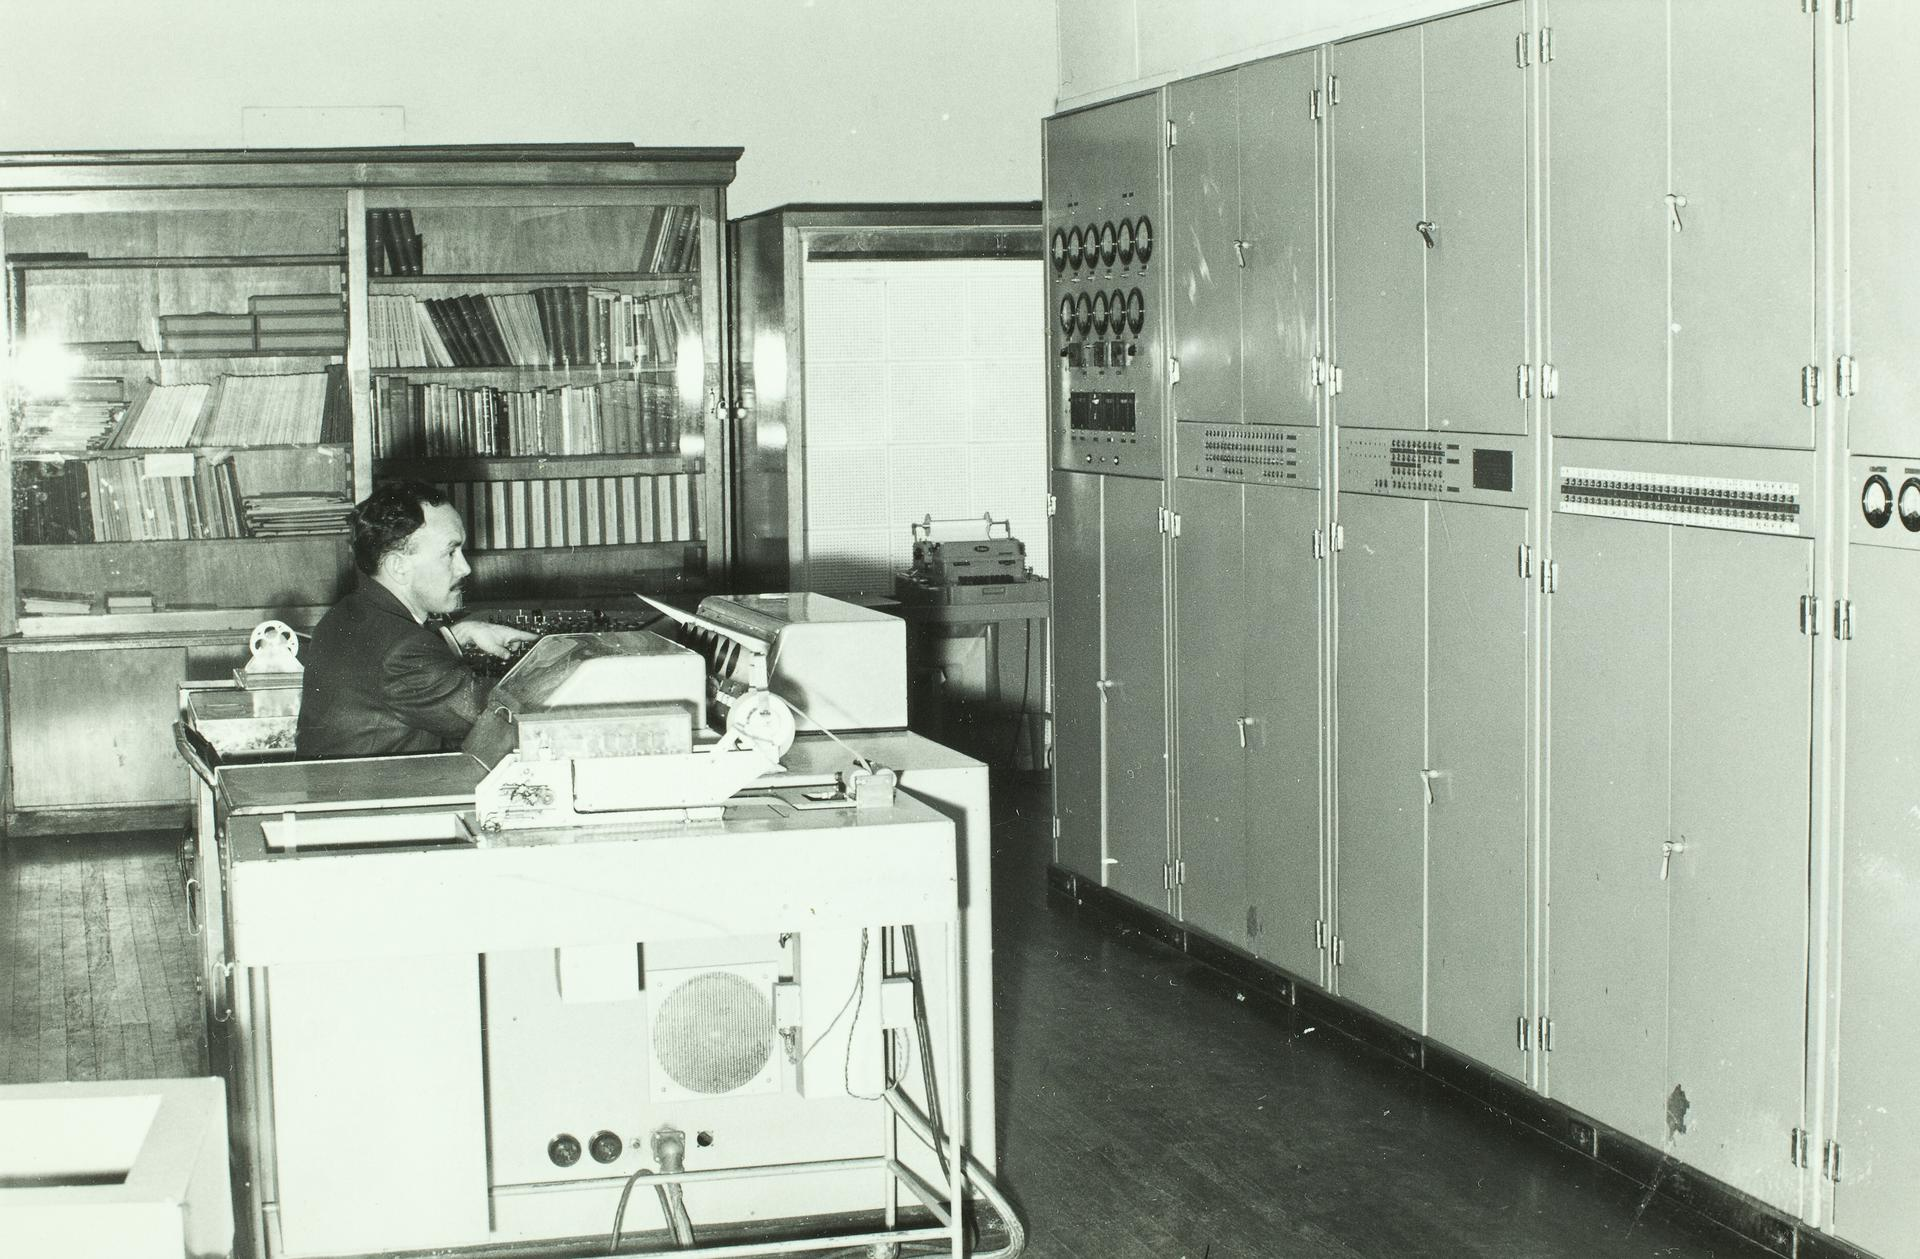 CSIRAC with staff member at the control panel, c1958